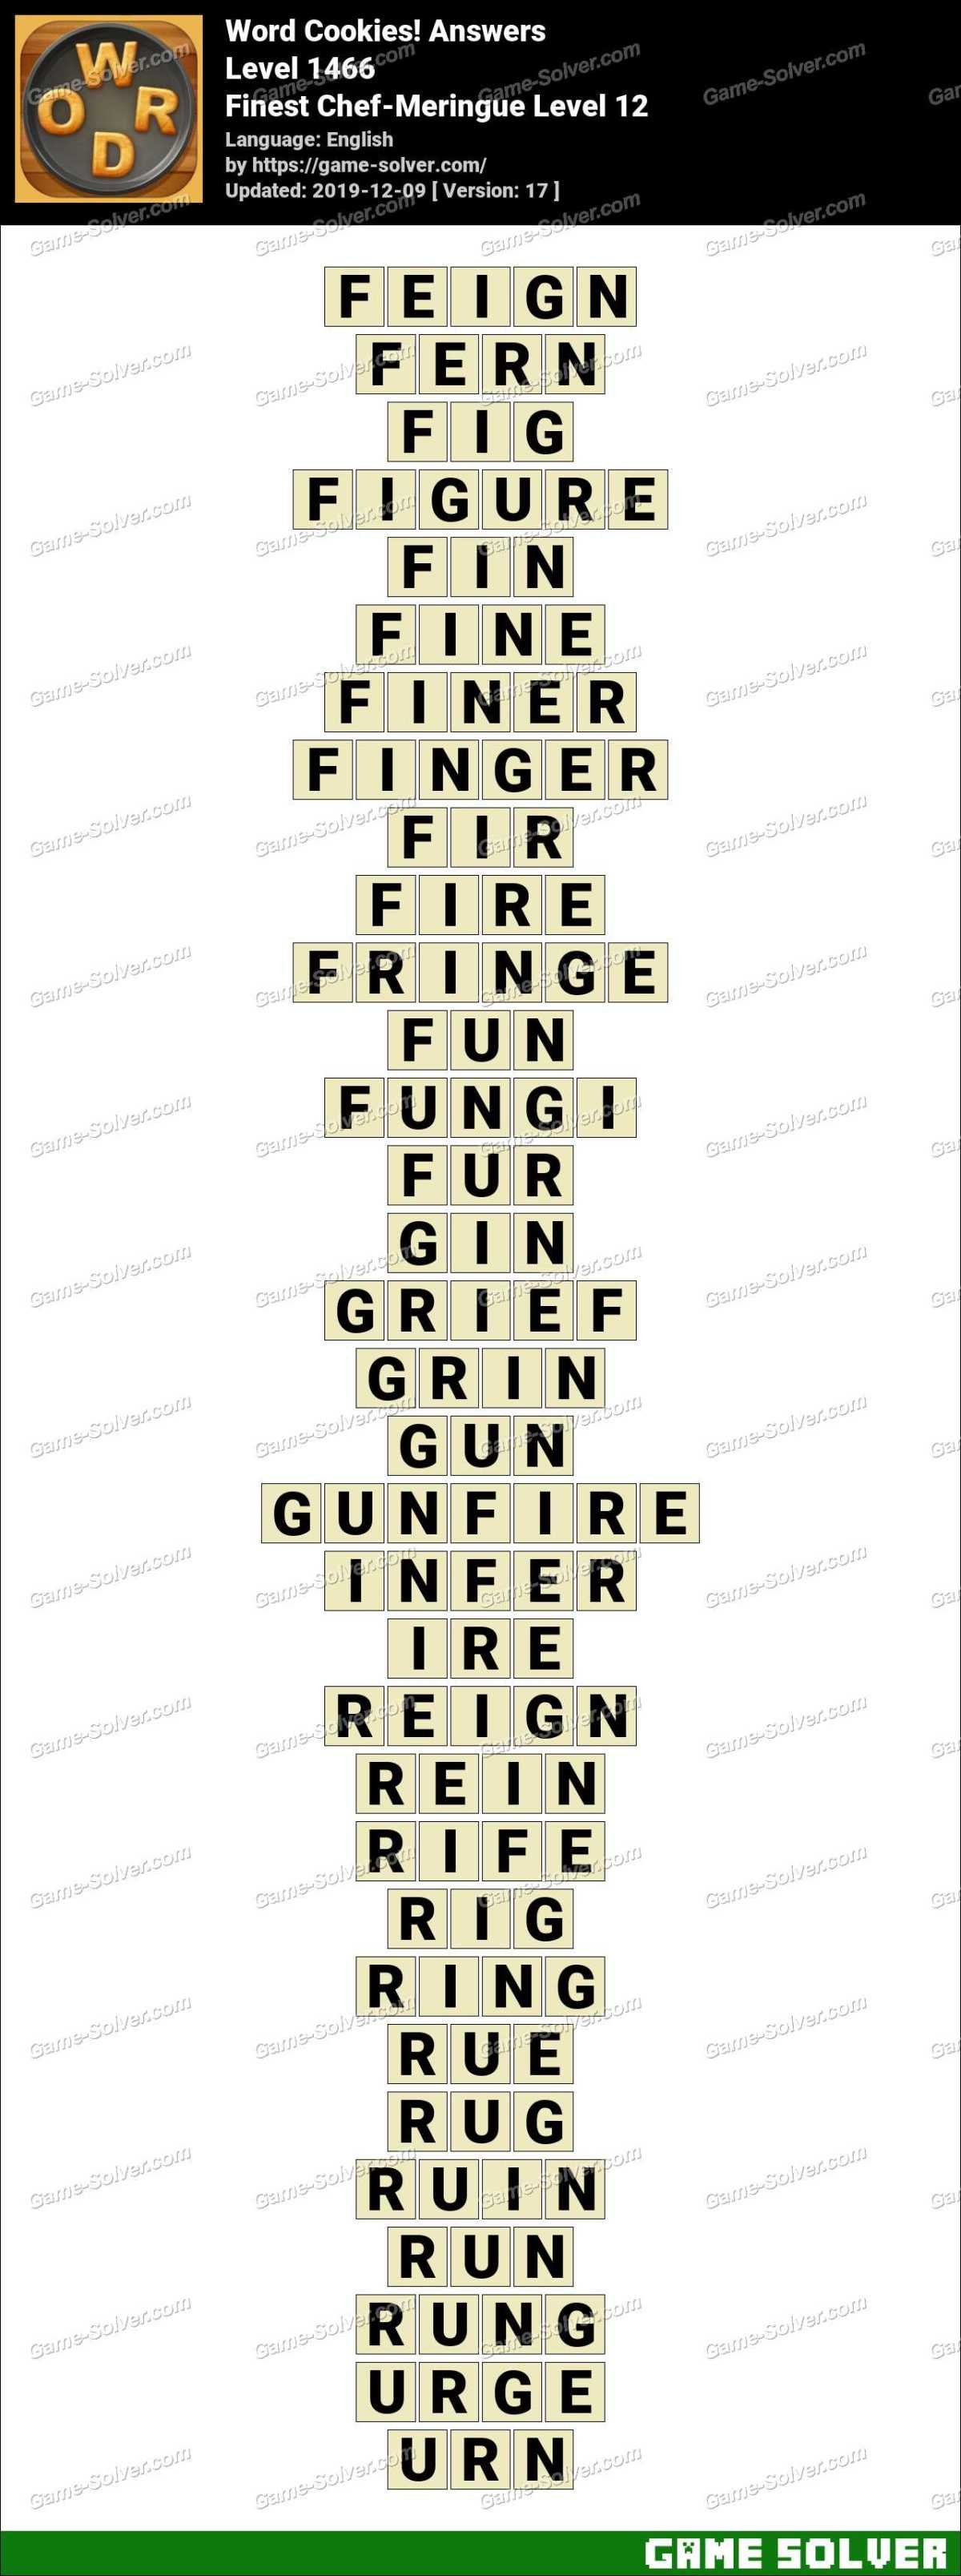 Word Cookies Finest Chef-Meringue Level 12 Answers